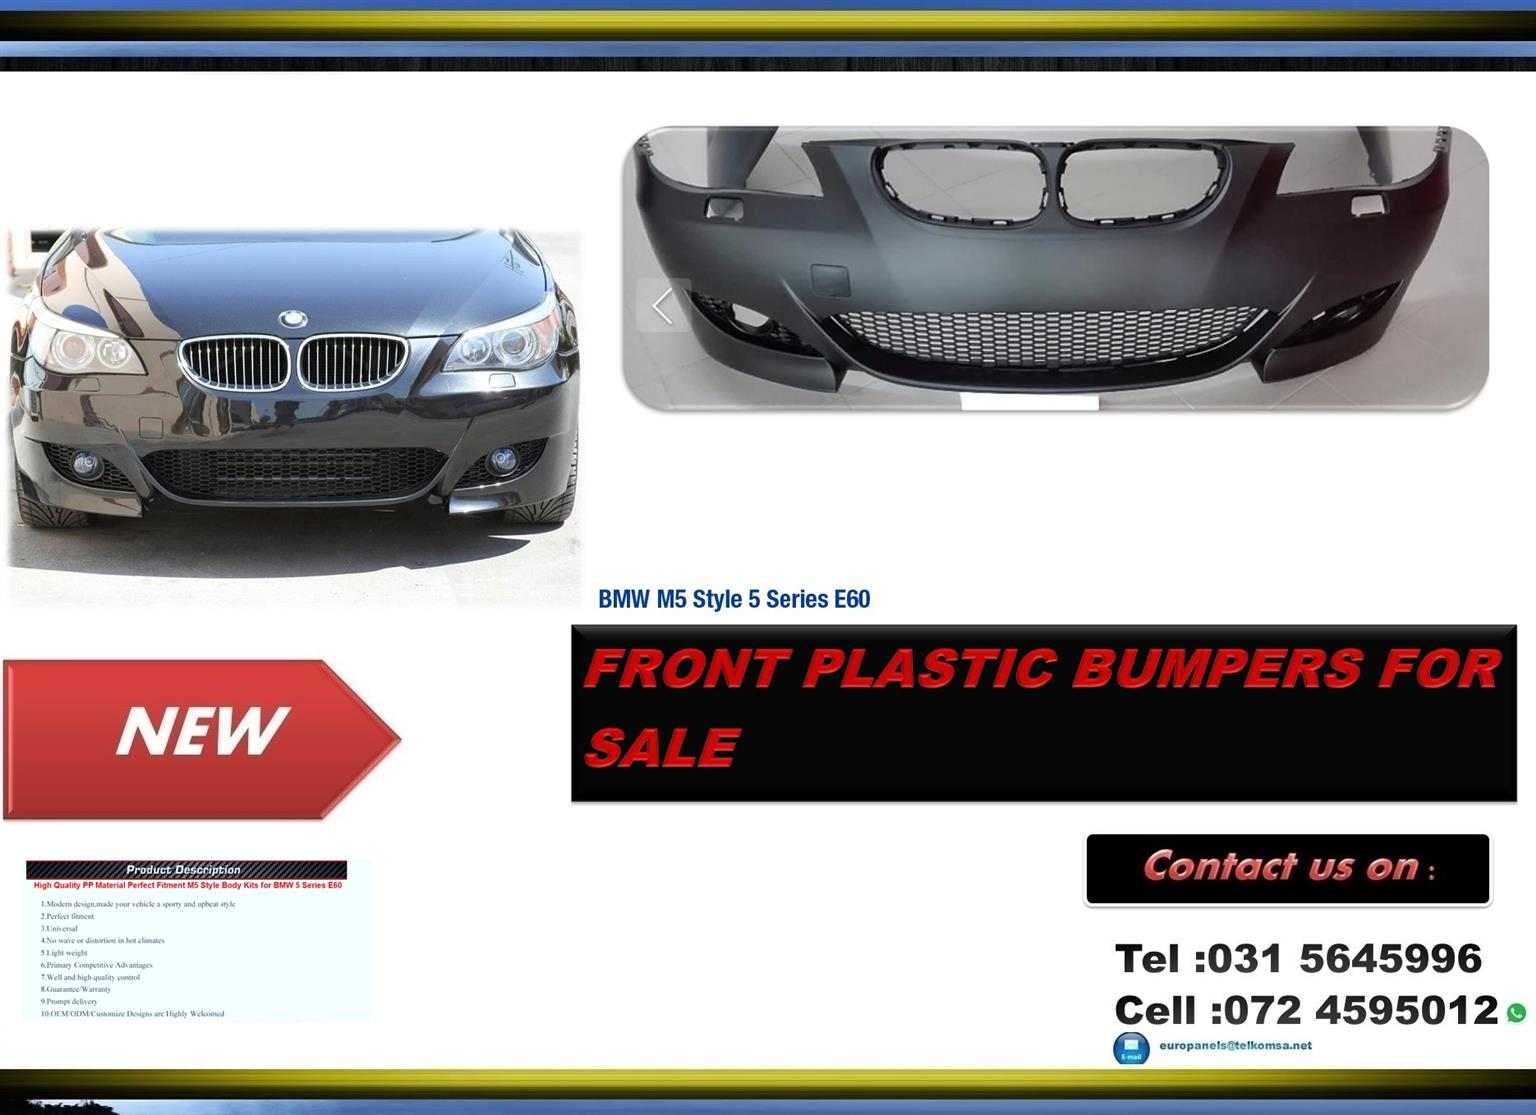 Bmw E60 M5 Style Brand New Plastic Front Bumpers For Sale Junk Mail